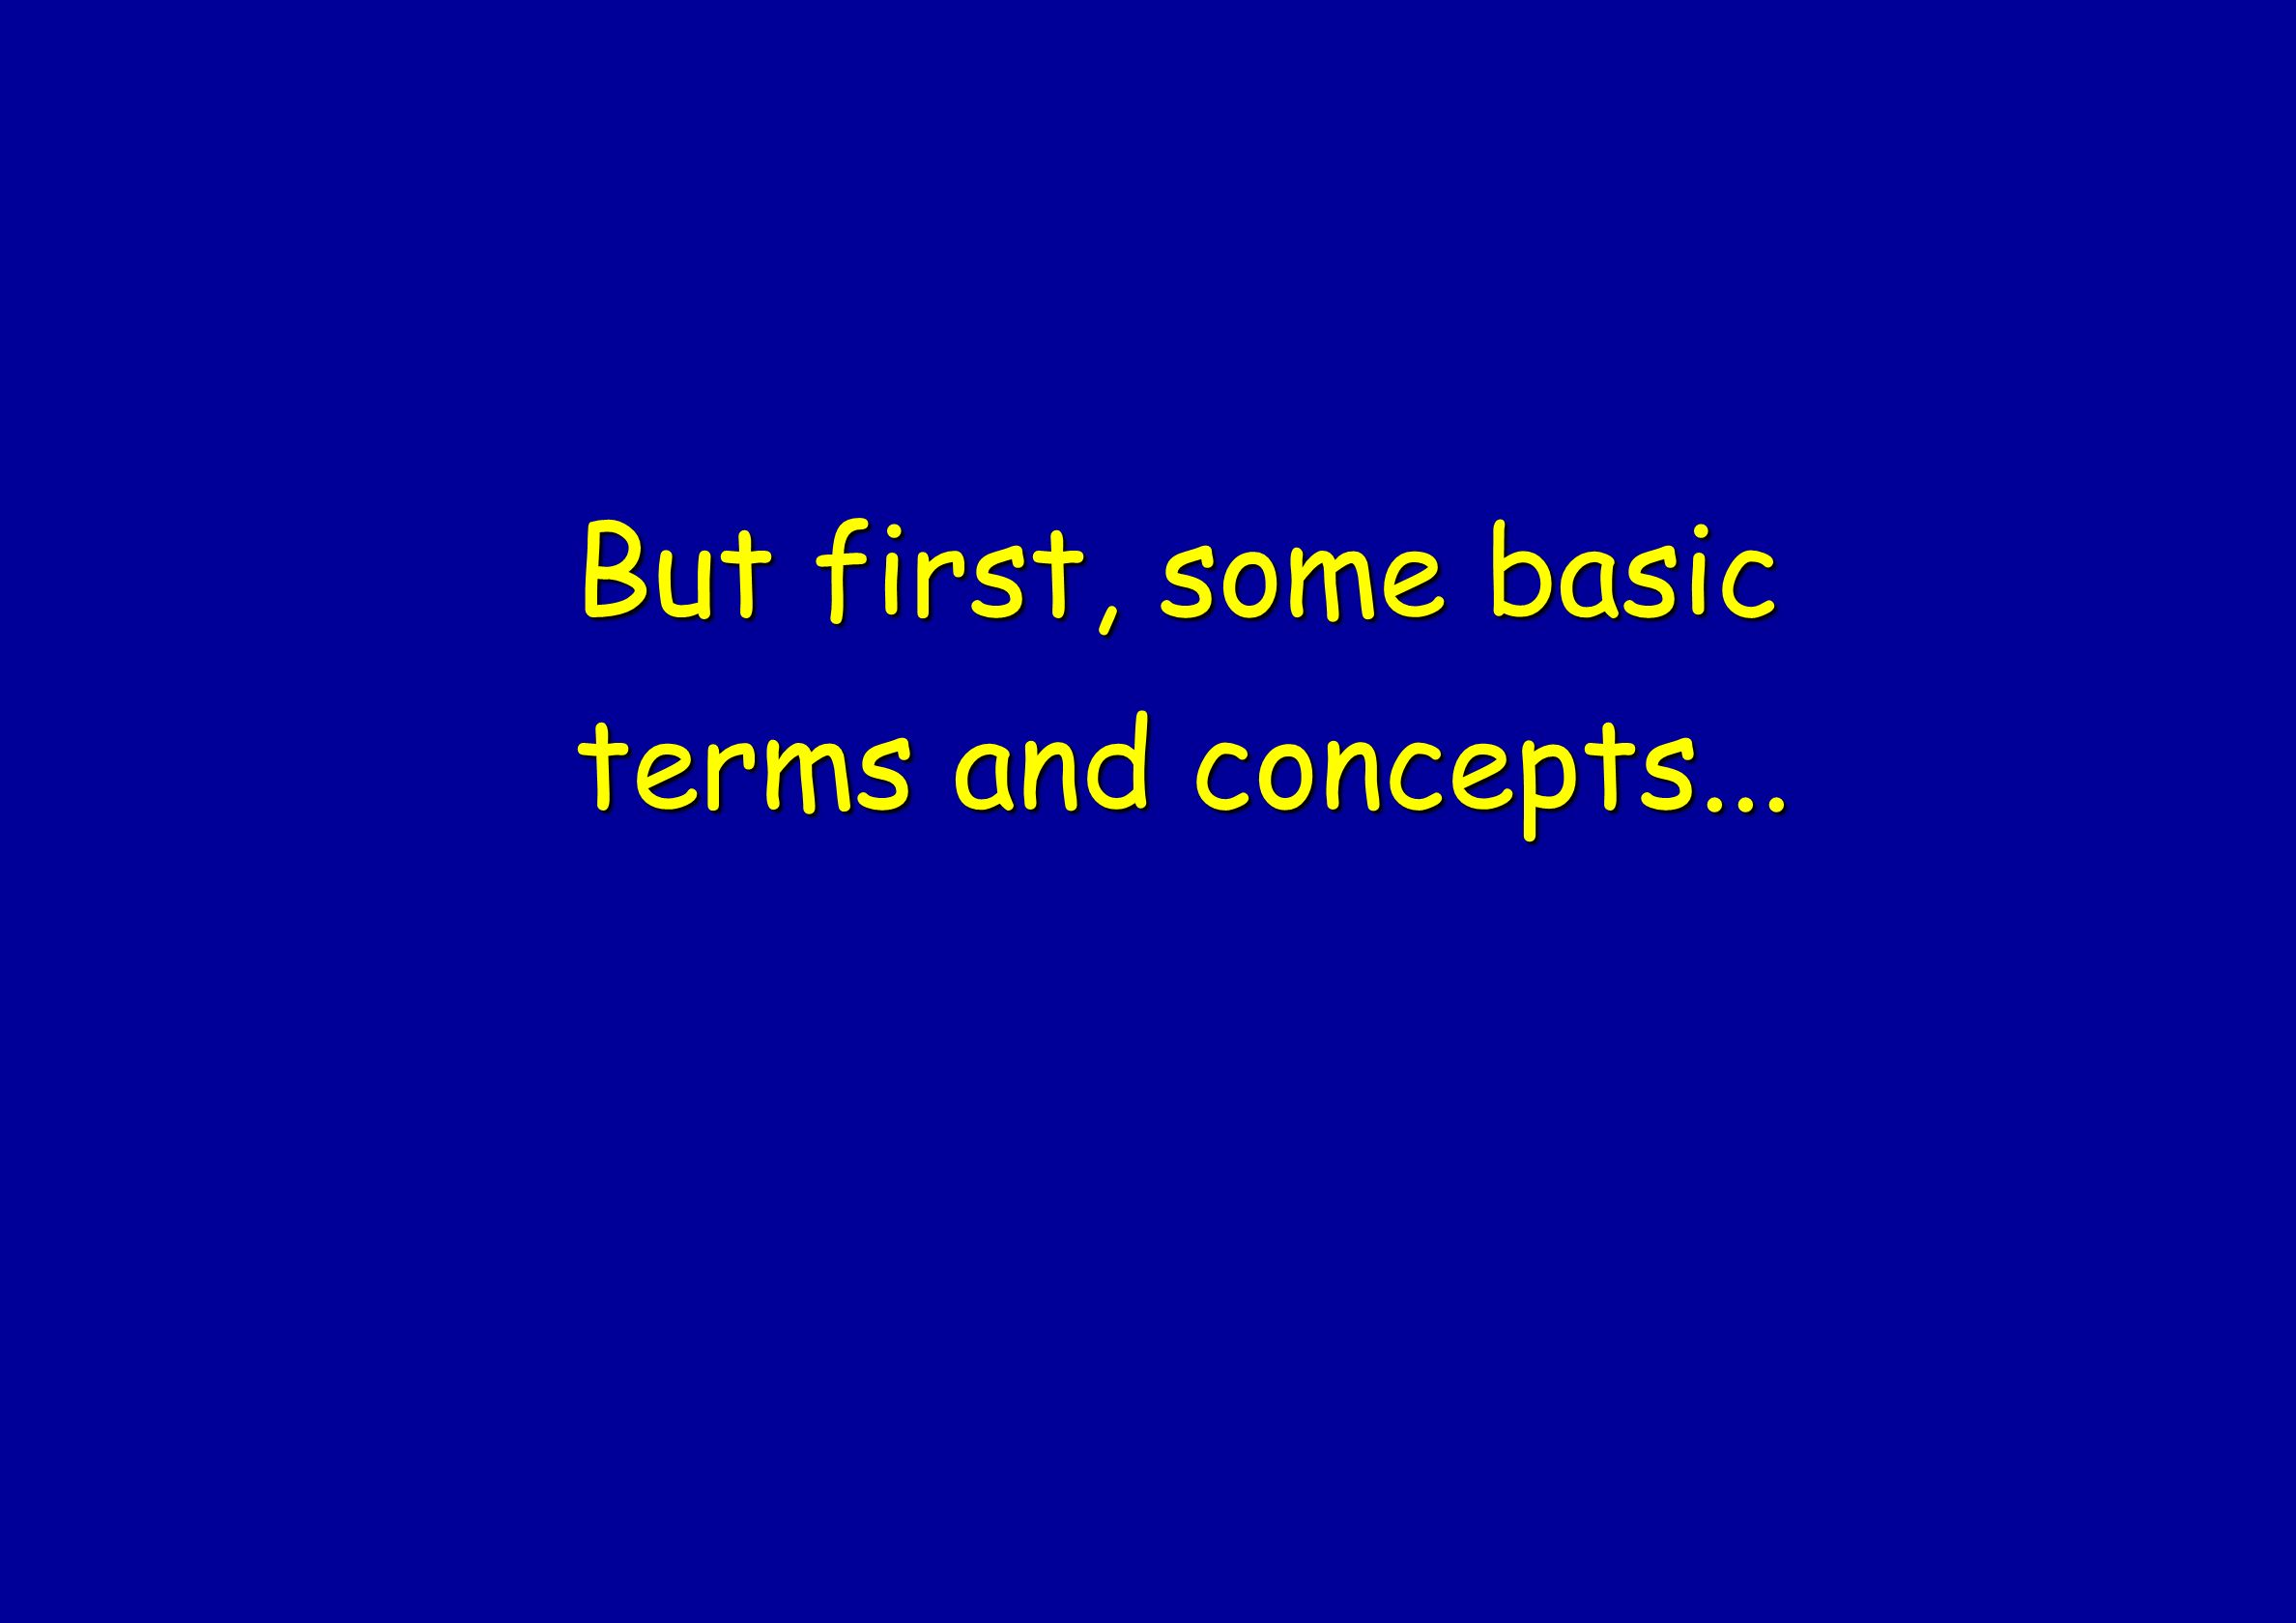 But first, some basic terms and concepts...